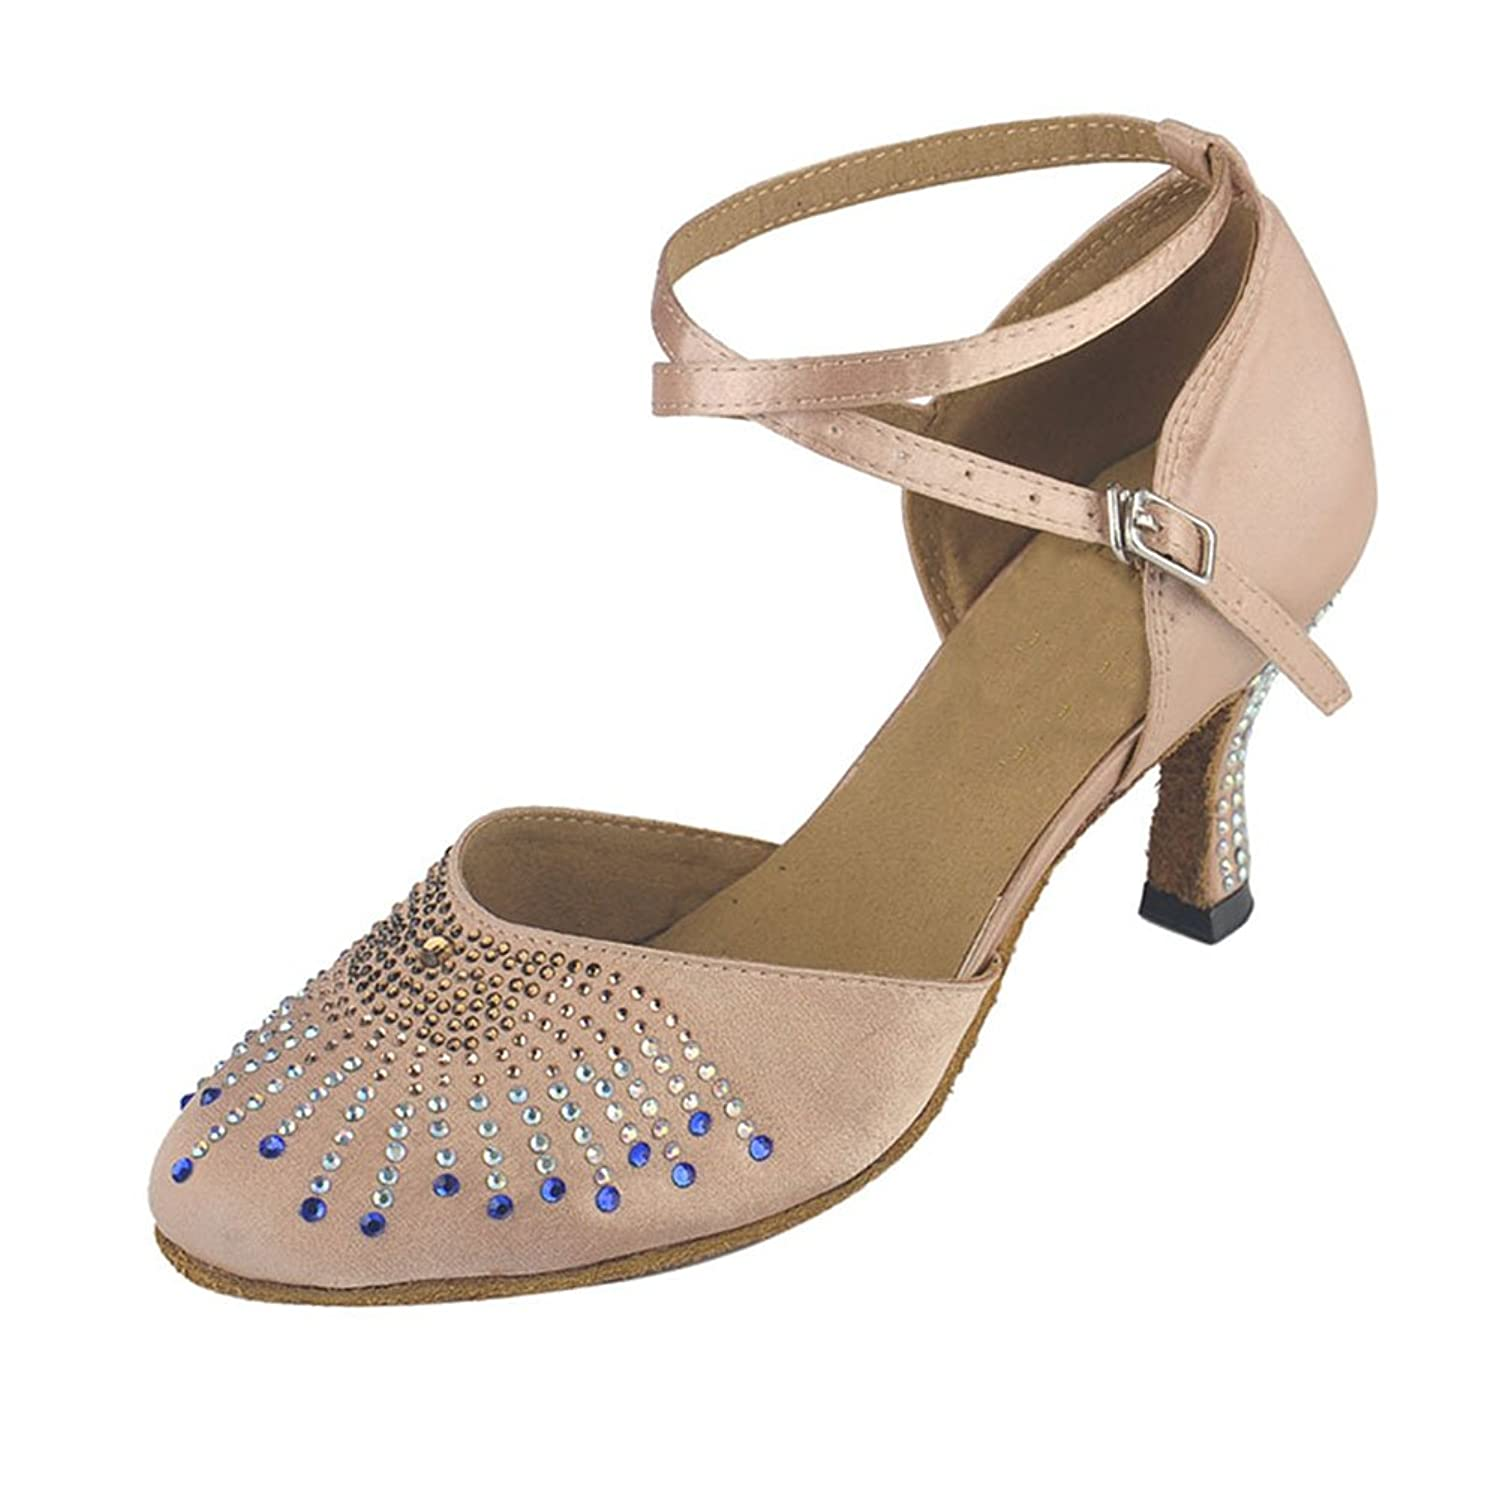 Oncefirst Women Sparkly Latin Salsa Performance Dance Shoes Ballroom Dancing Shoes